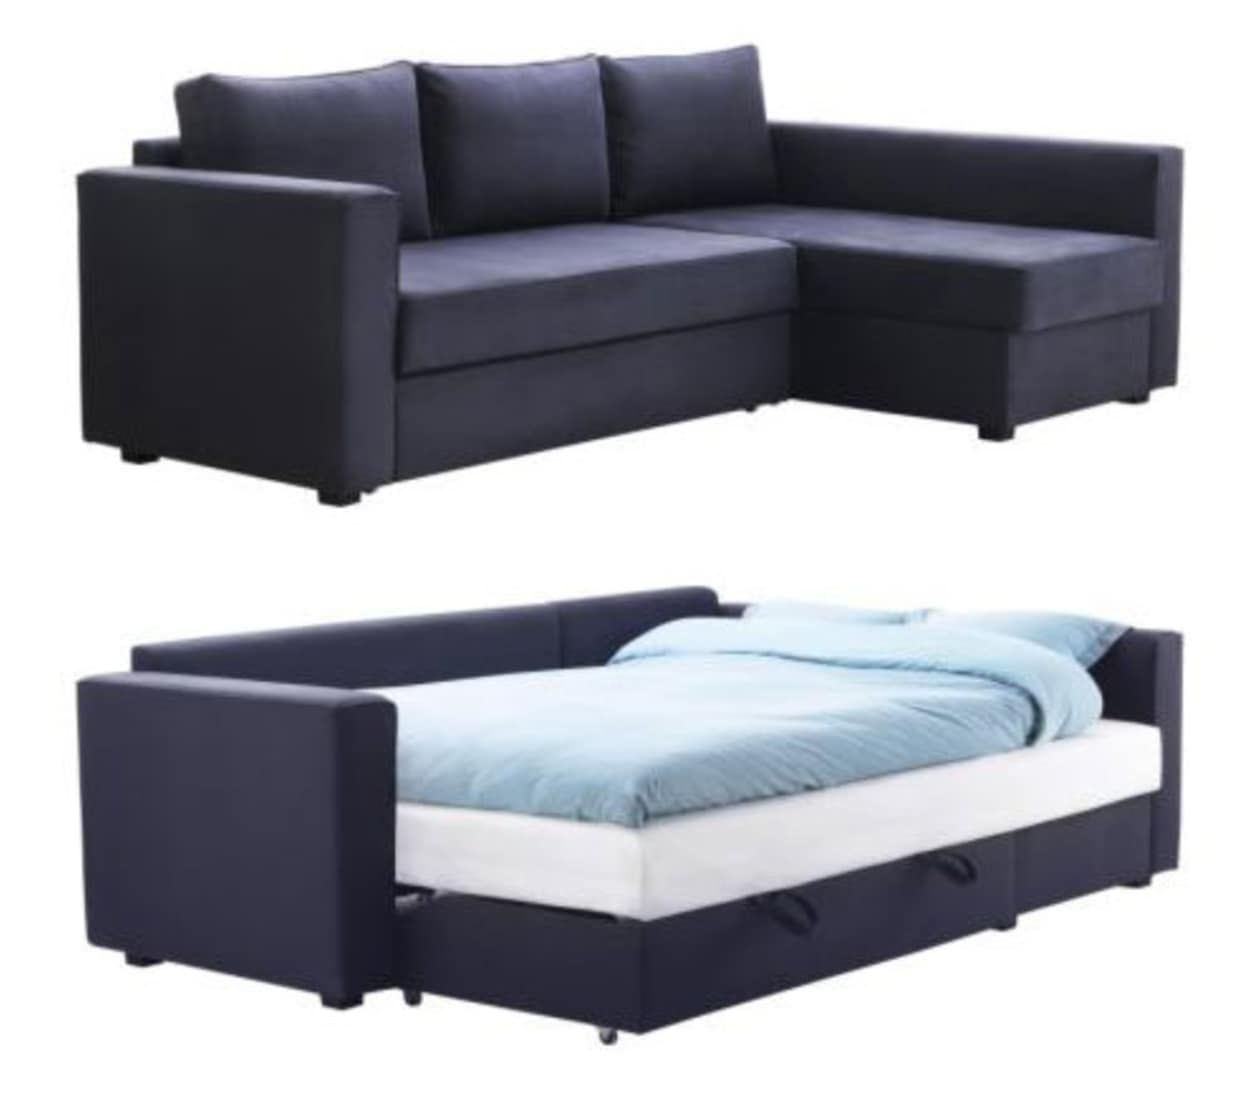 Manstad Sofa Bed With Storage From Ikea Sofa Bed With Storage Pull Out Sofa Bed Ikea Corner Sofa Bed